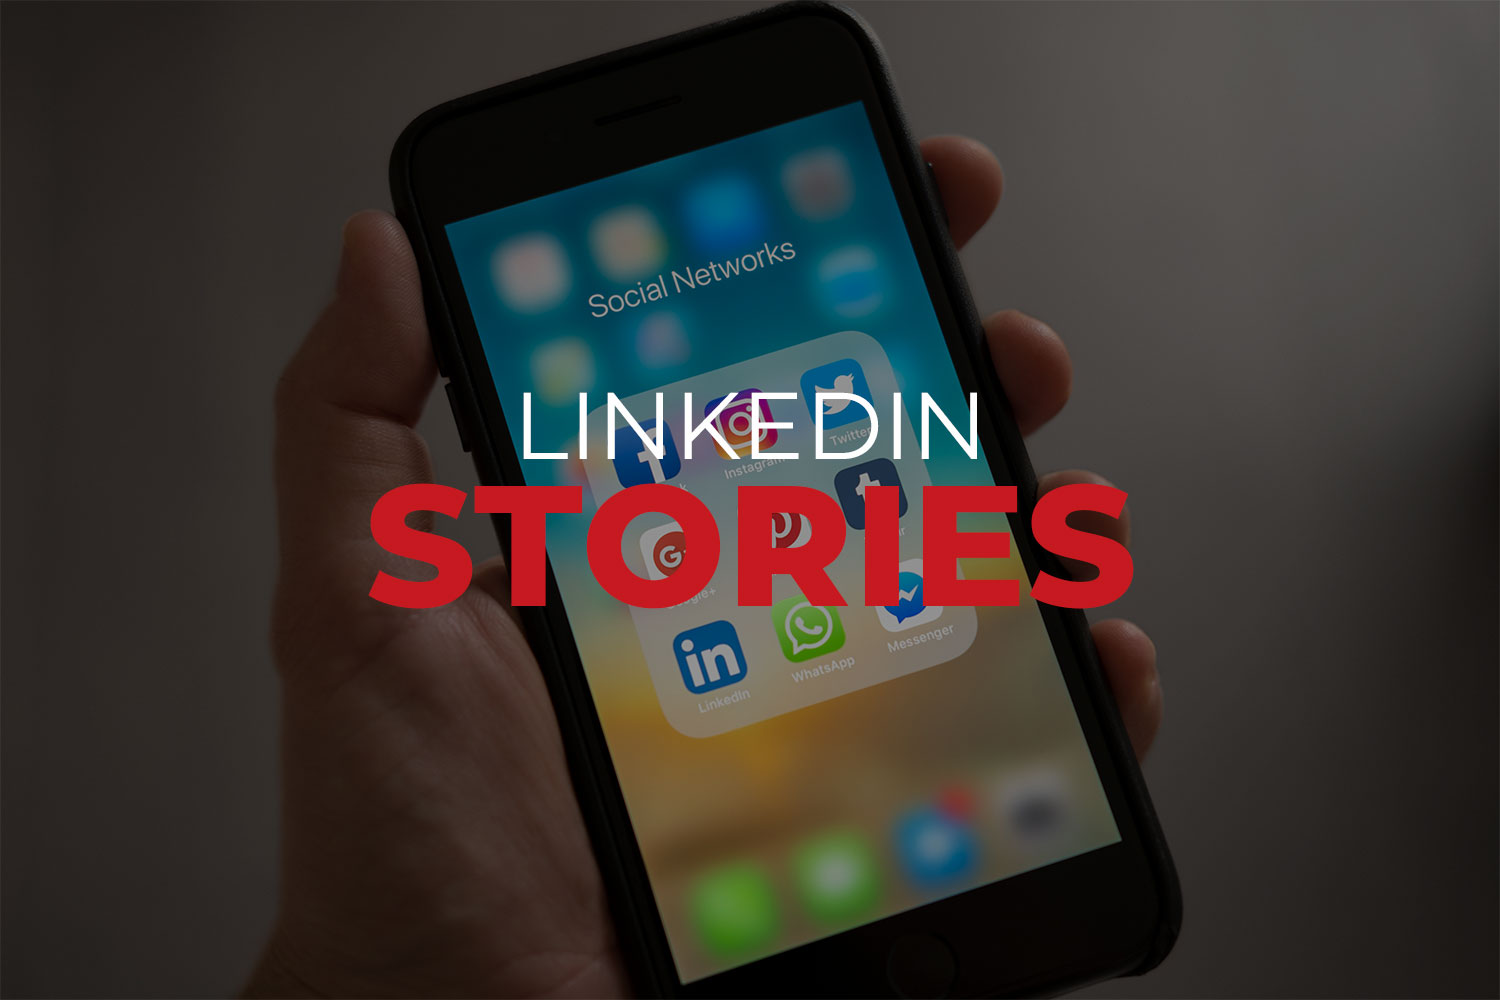 LinkedIn Stories featured